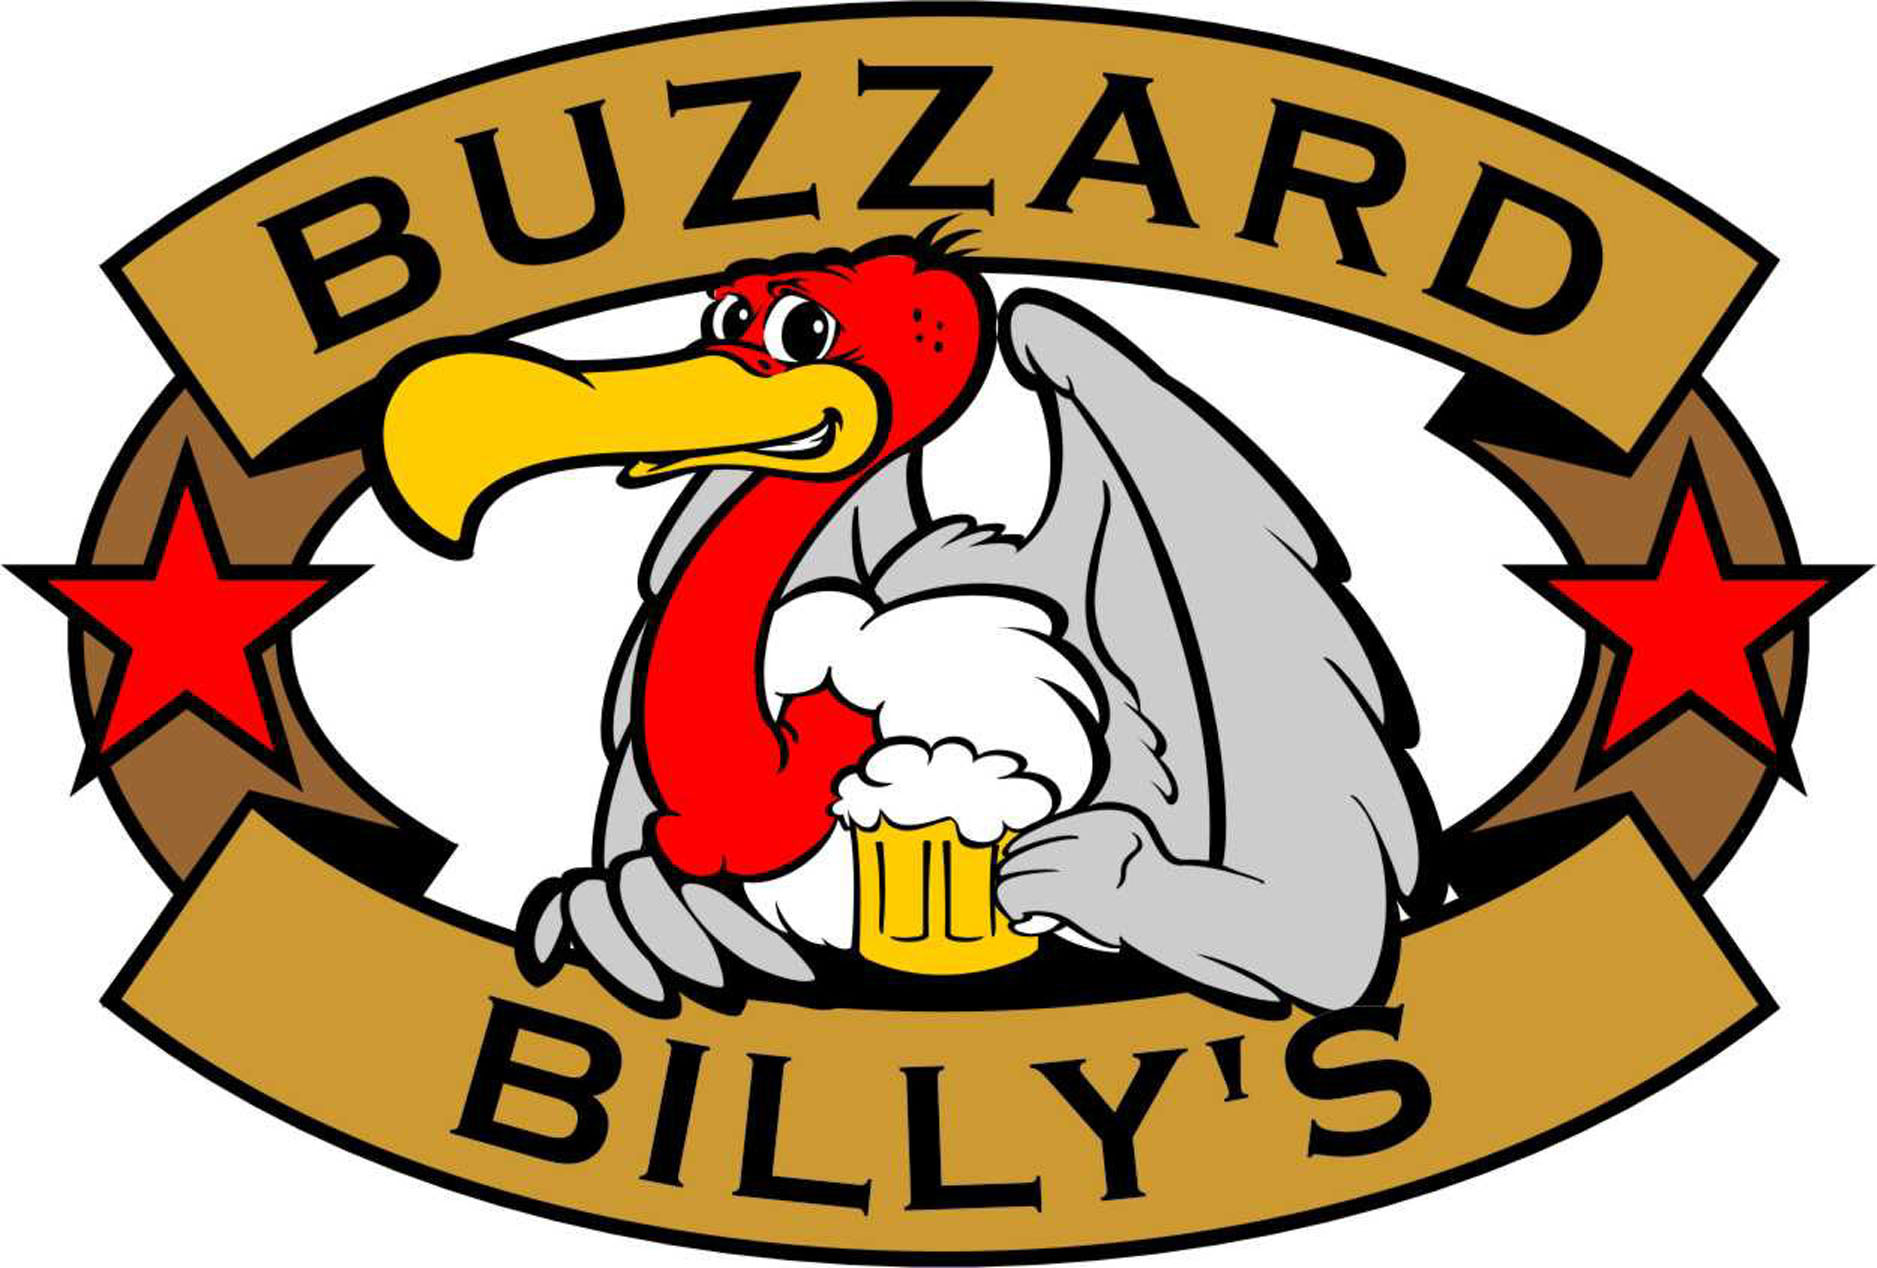 Buzzard Billy's @ Buzzard Billy's